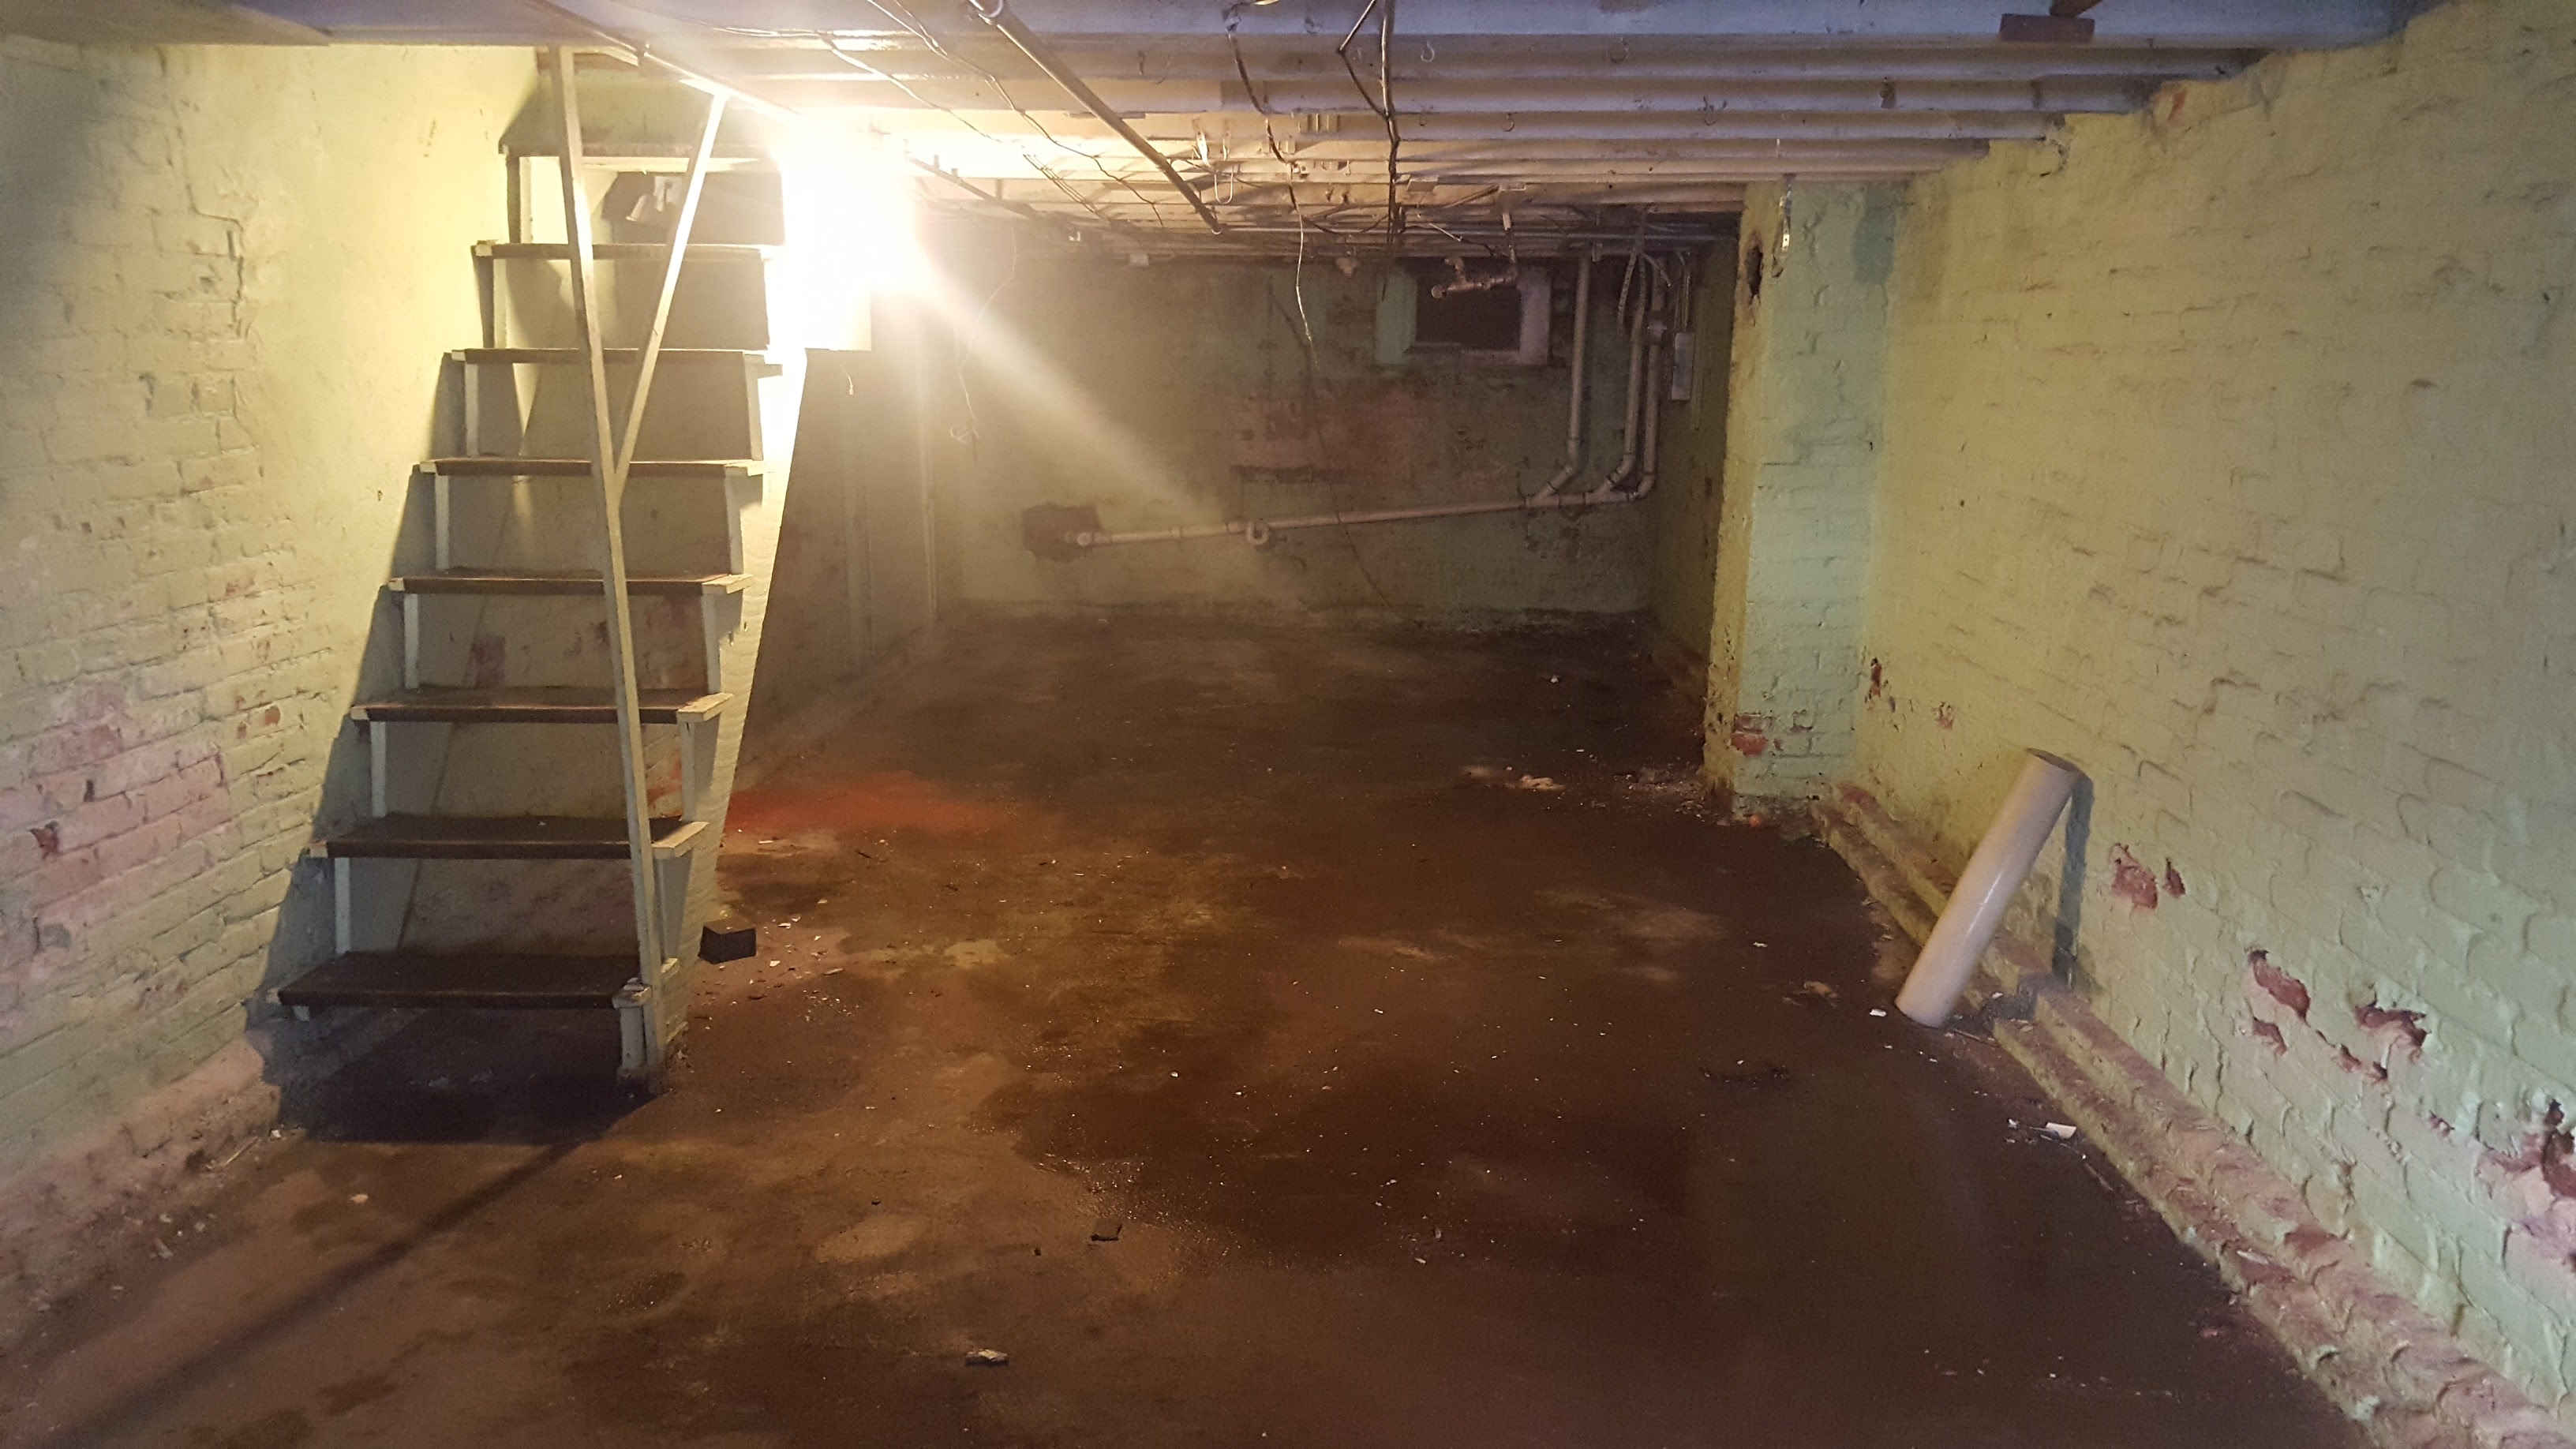 Digging Basements - Adding New Height to Low Ceilings By